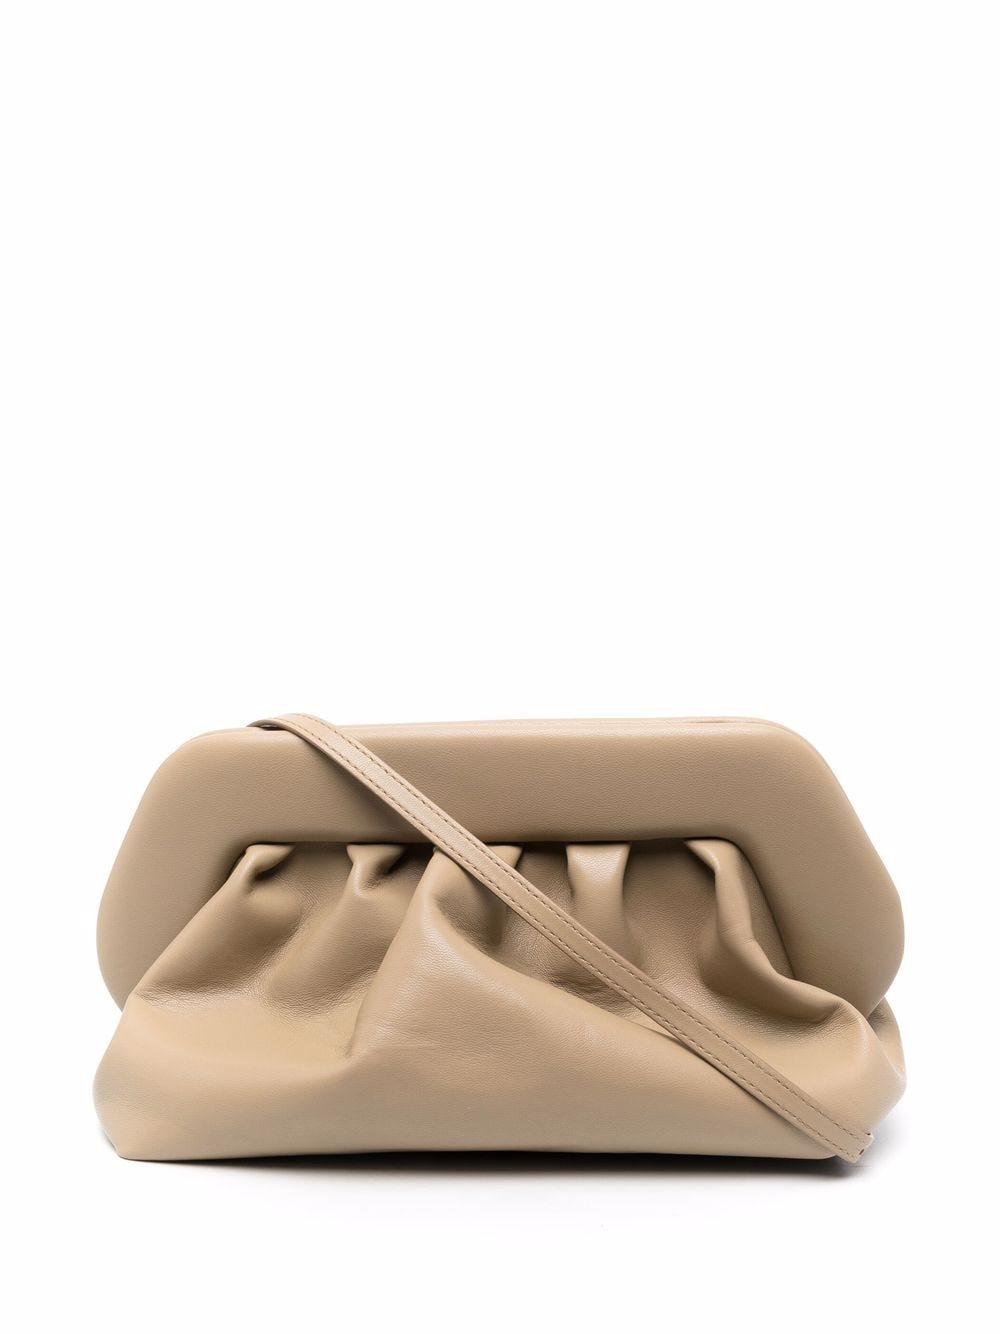 Picture of Themoire` | Bios Artificial Leather Clutch